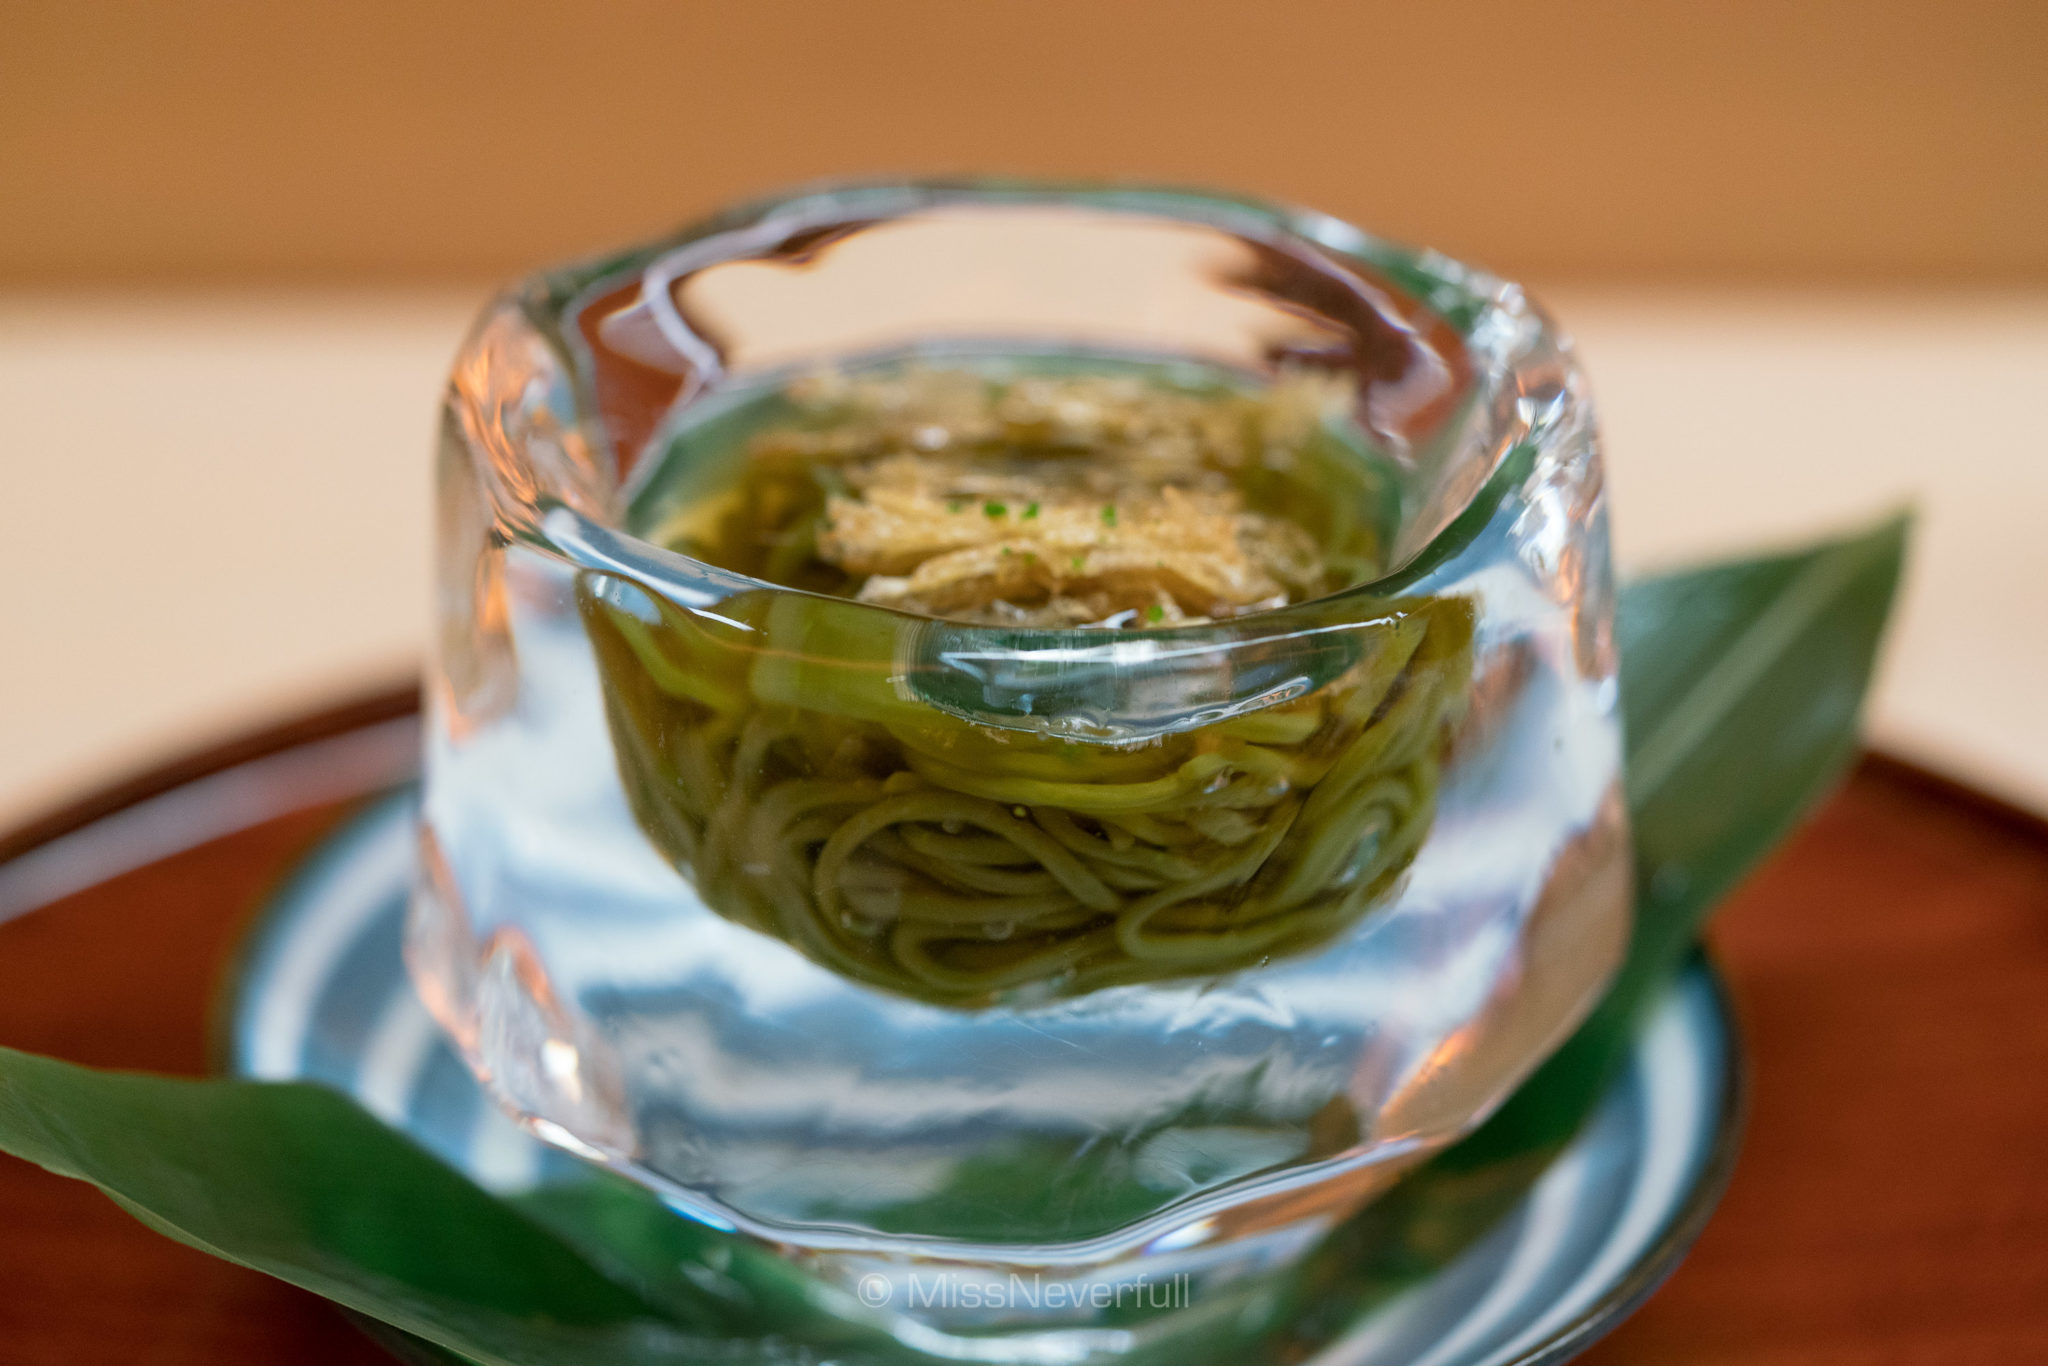 11. Cold soba with bamboo leaves | 笹の葉を練り込んだ冷麦